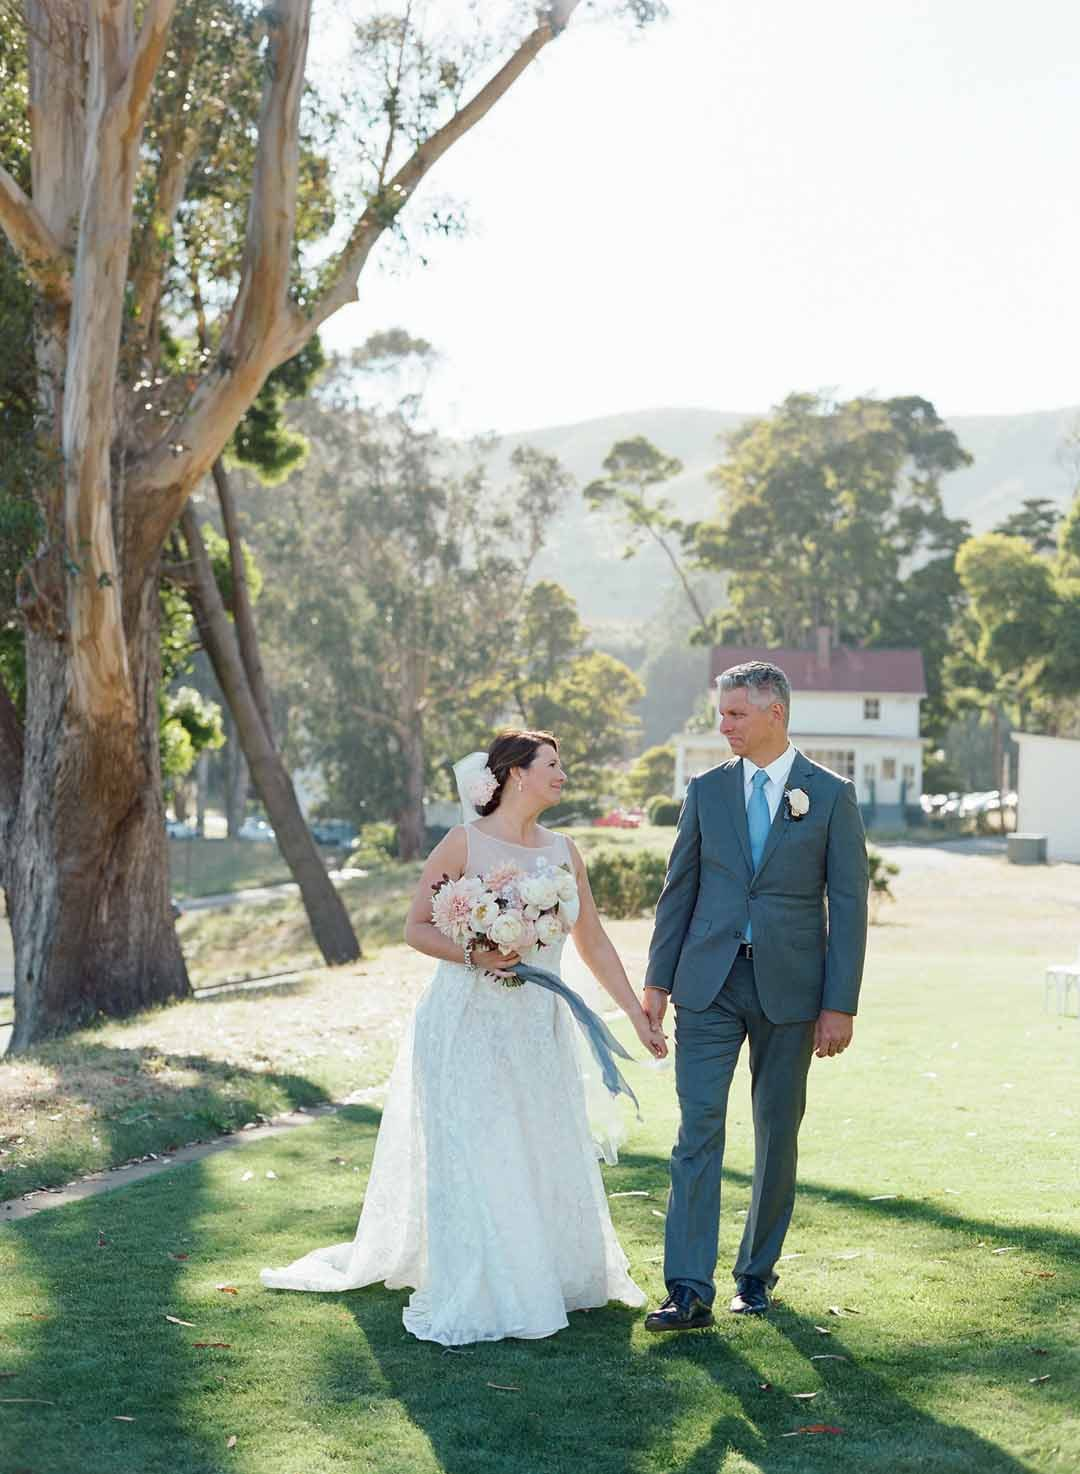 Bride and groom portrait at Cavallo Point, Sausalito   Amy Nichols Special Events